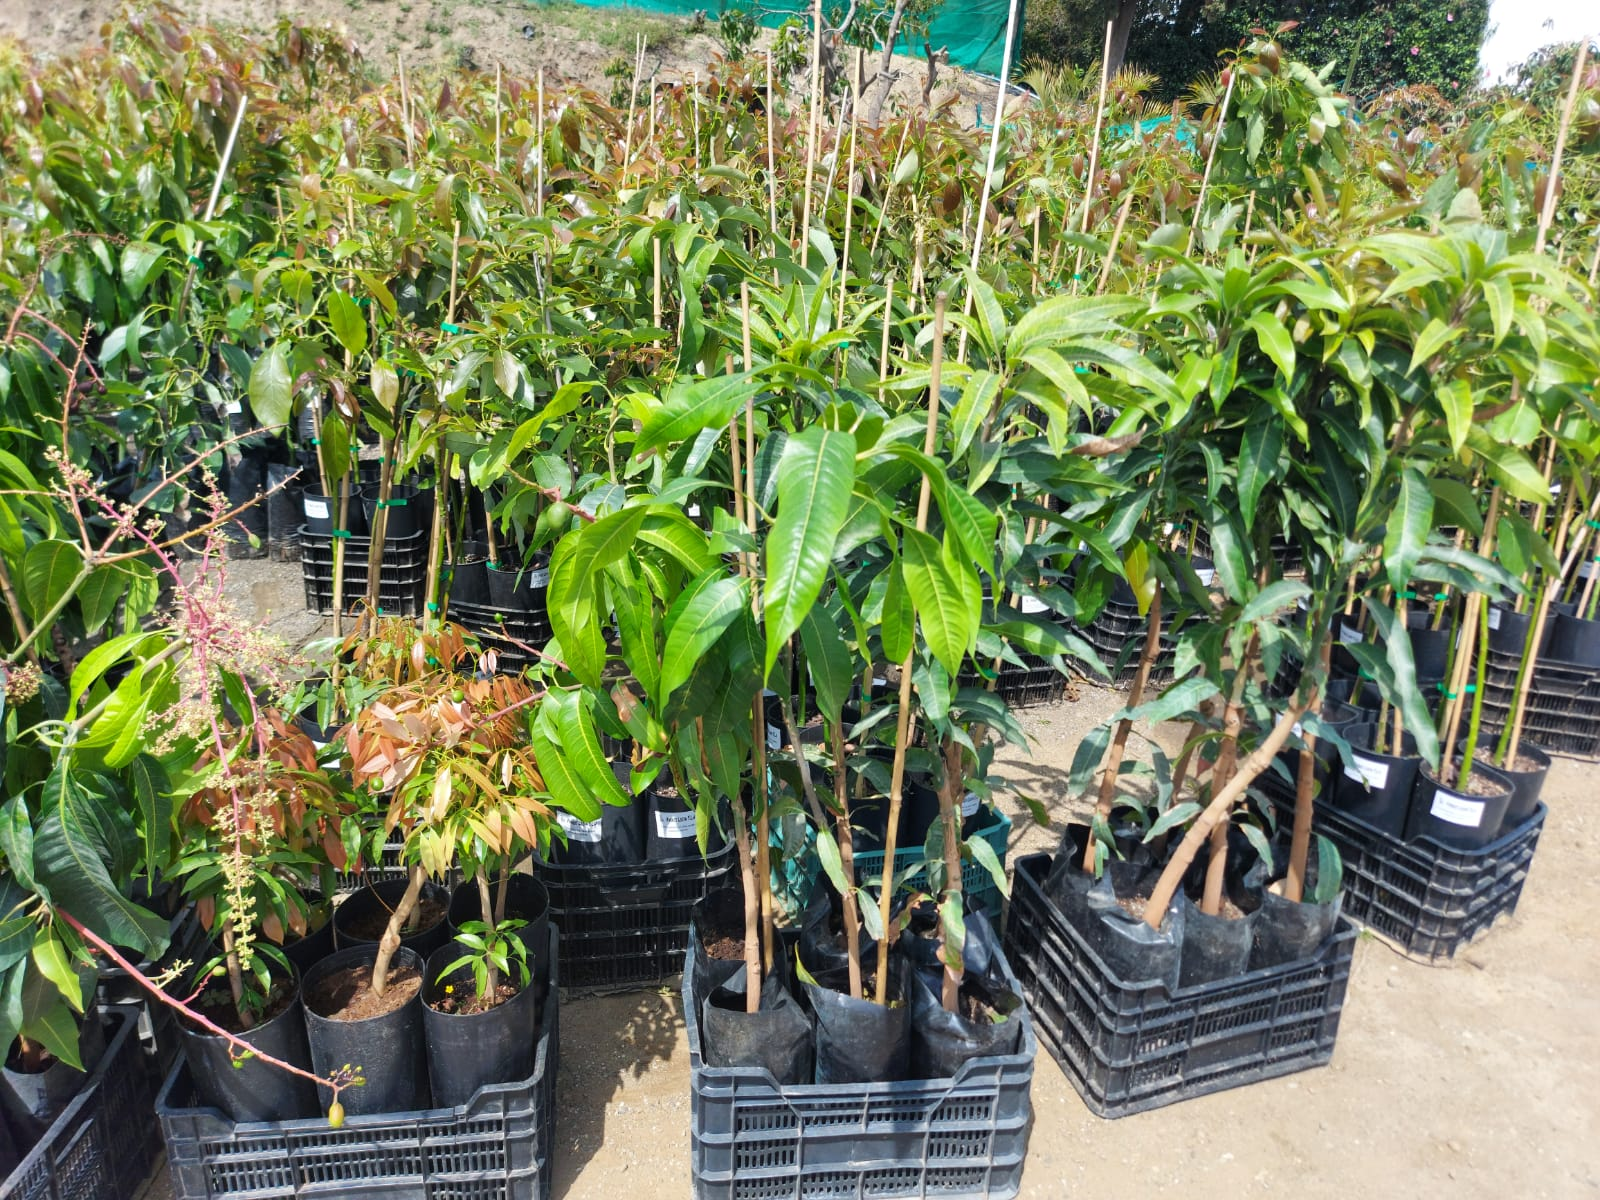 Nursery-Cultivation Production Avocado - Mango plants with basic propagating material from Spain